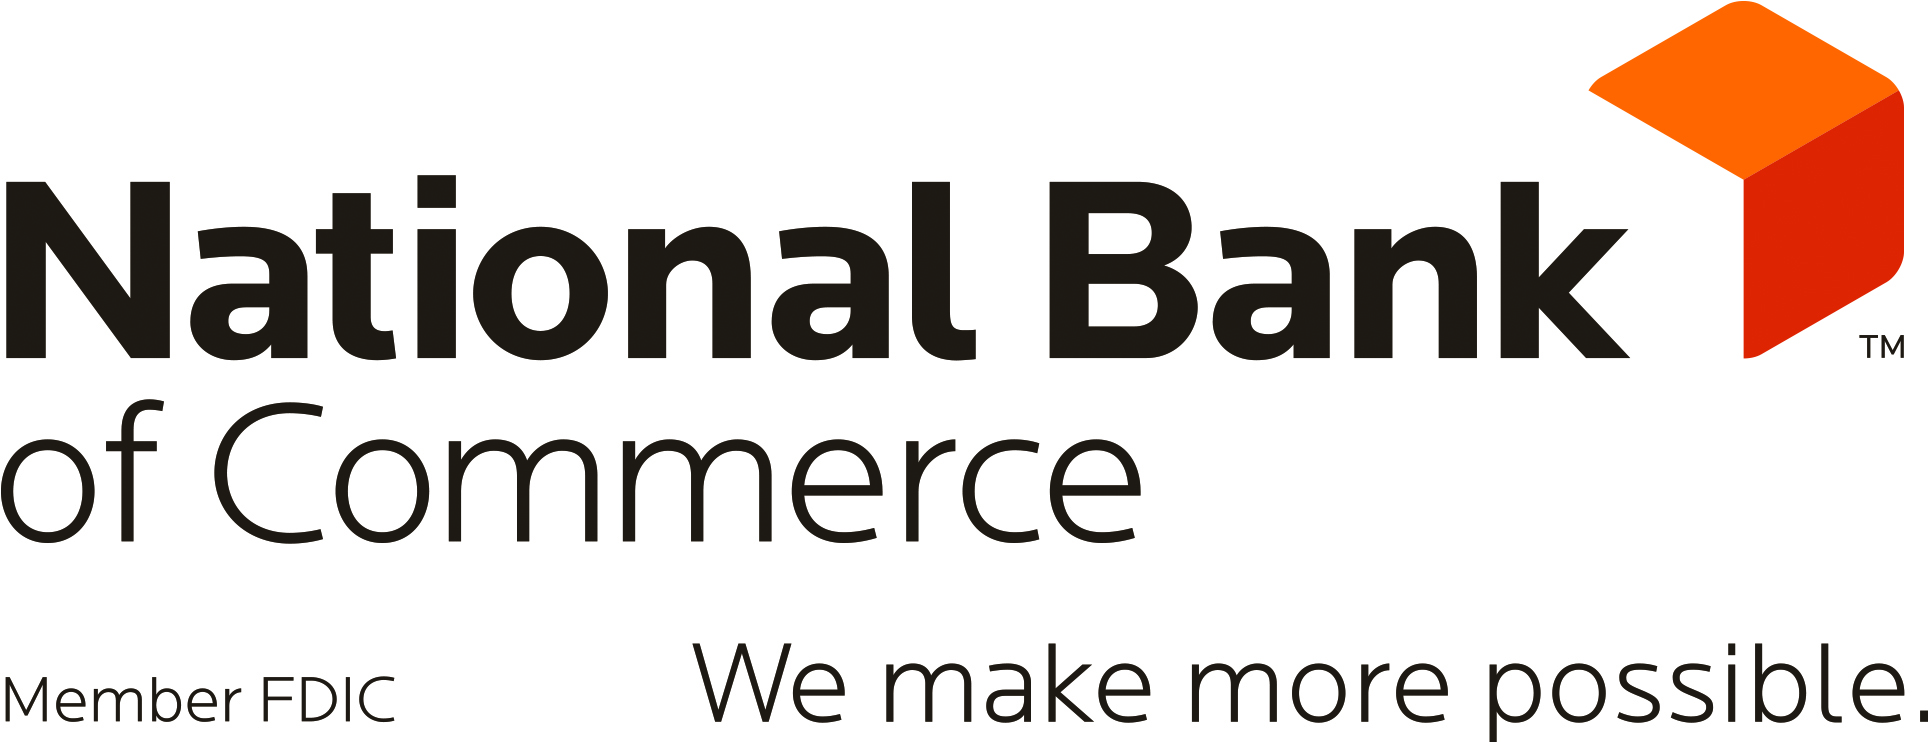 National Bank of Commerce - Downtown